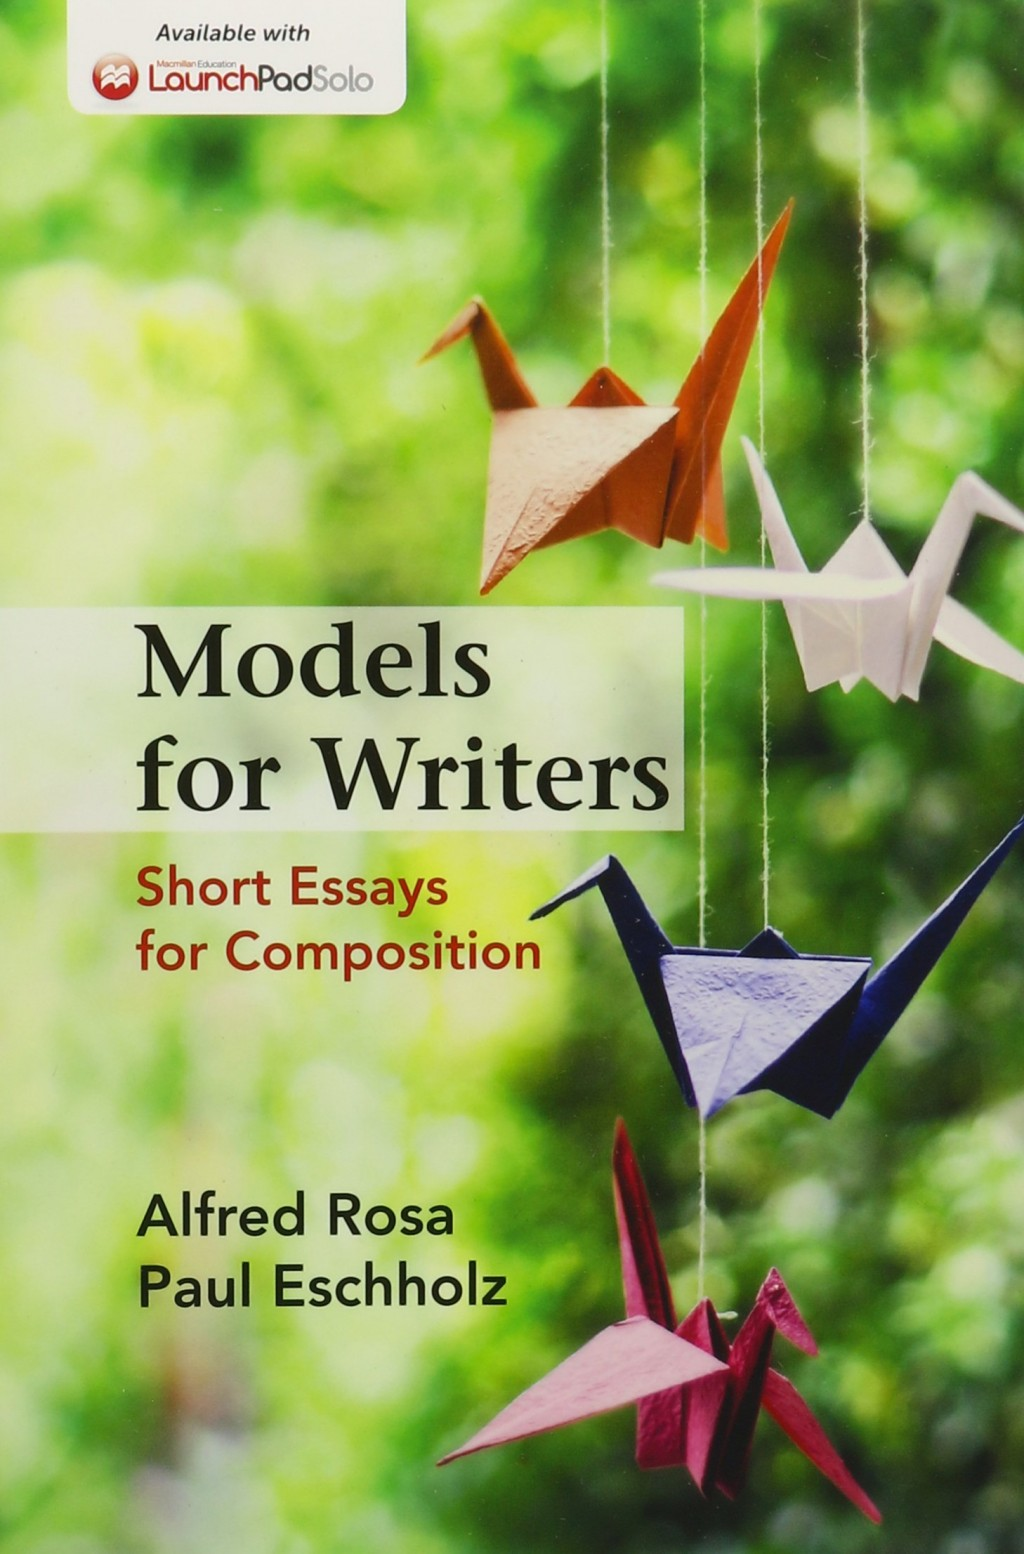 001 81truyjdqfl Models For Writers Short Essays Composition Essay Singular 12th Edition Pdf 13th Large